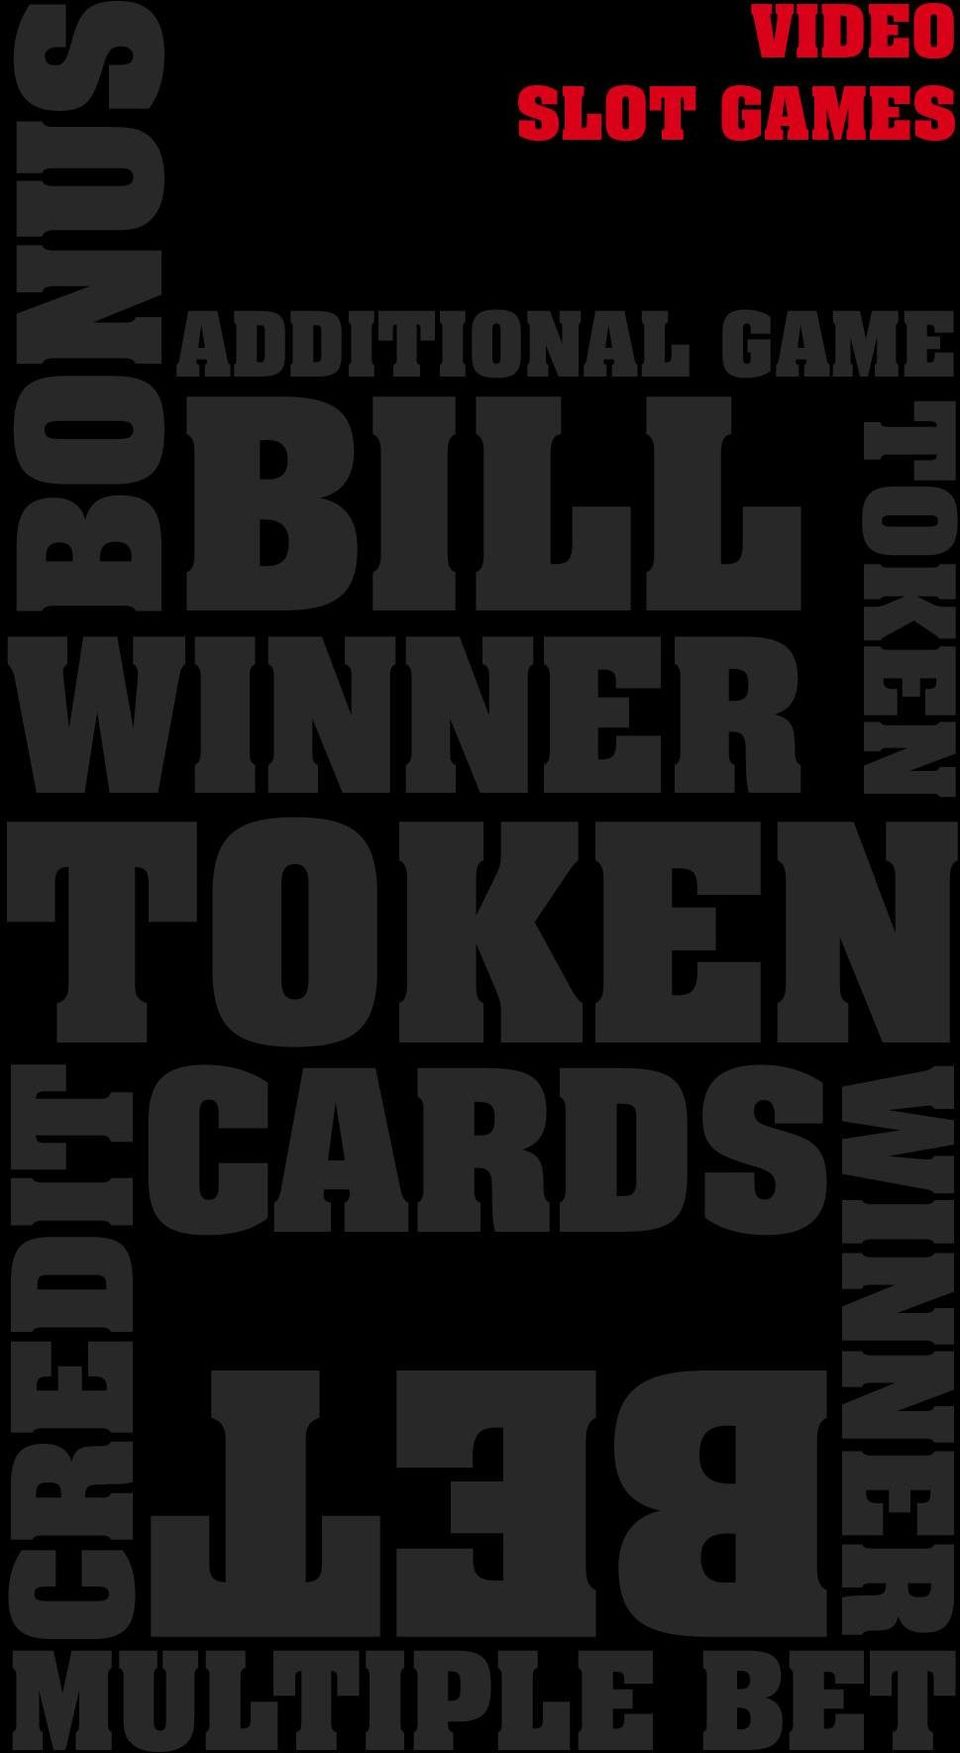 BILL WINNER TOKEN TOKEN